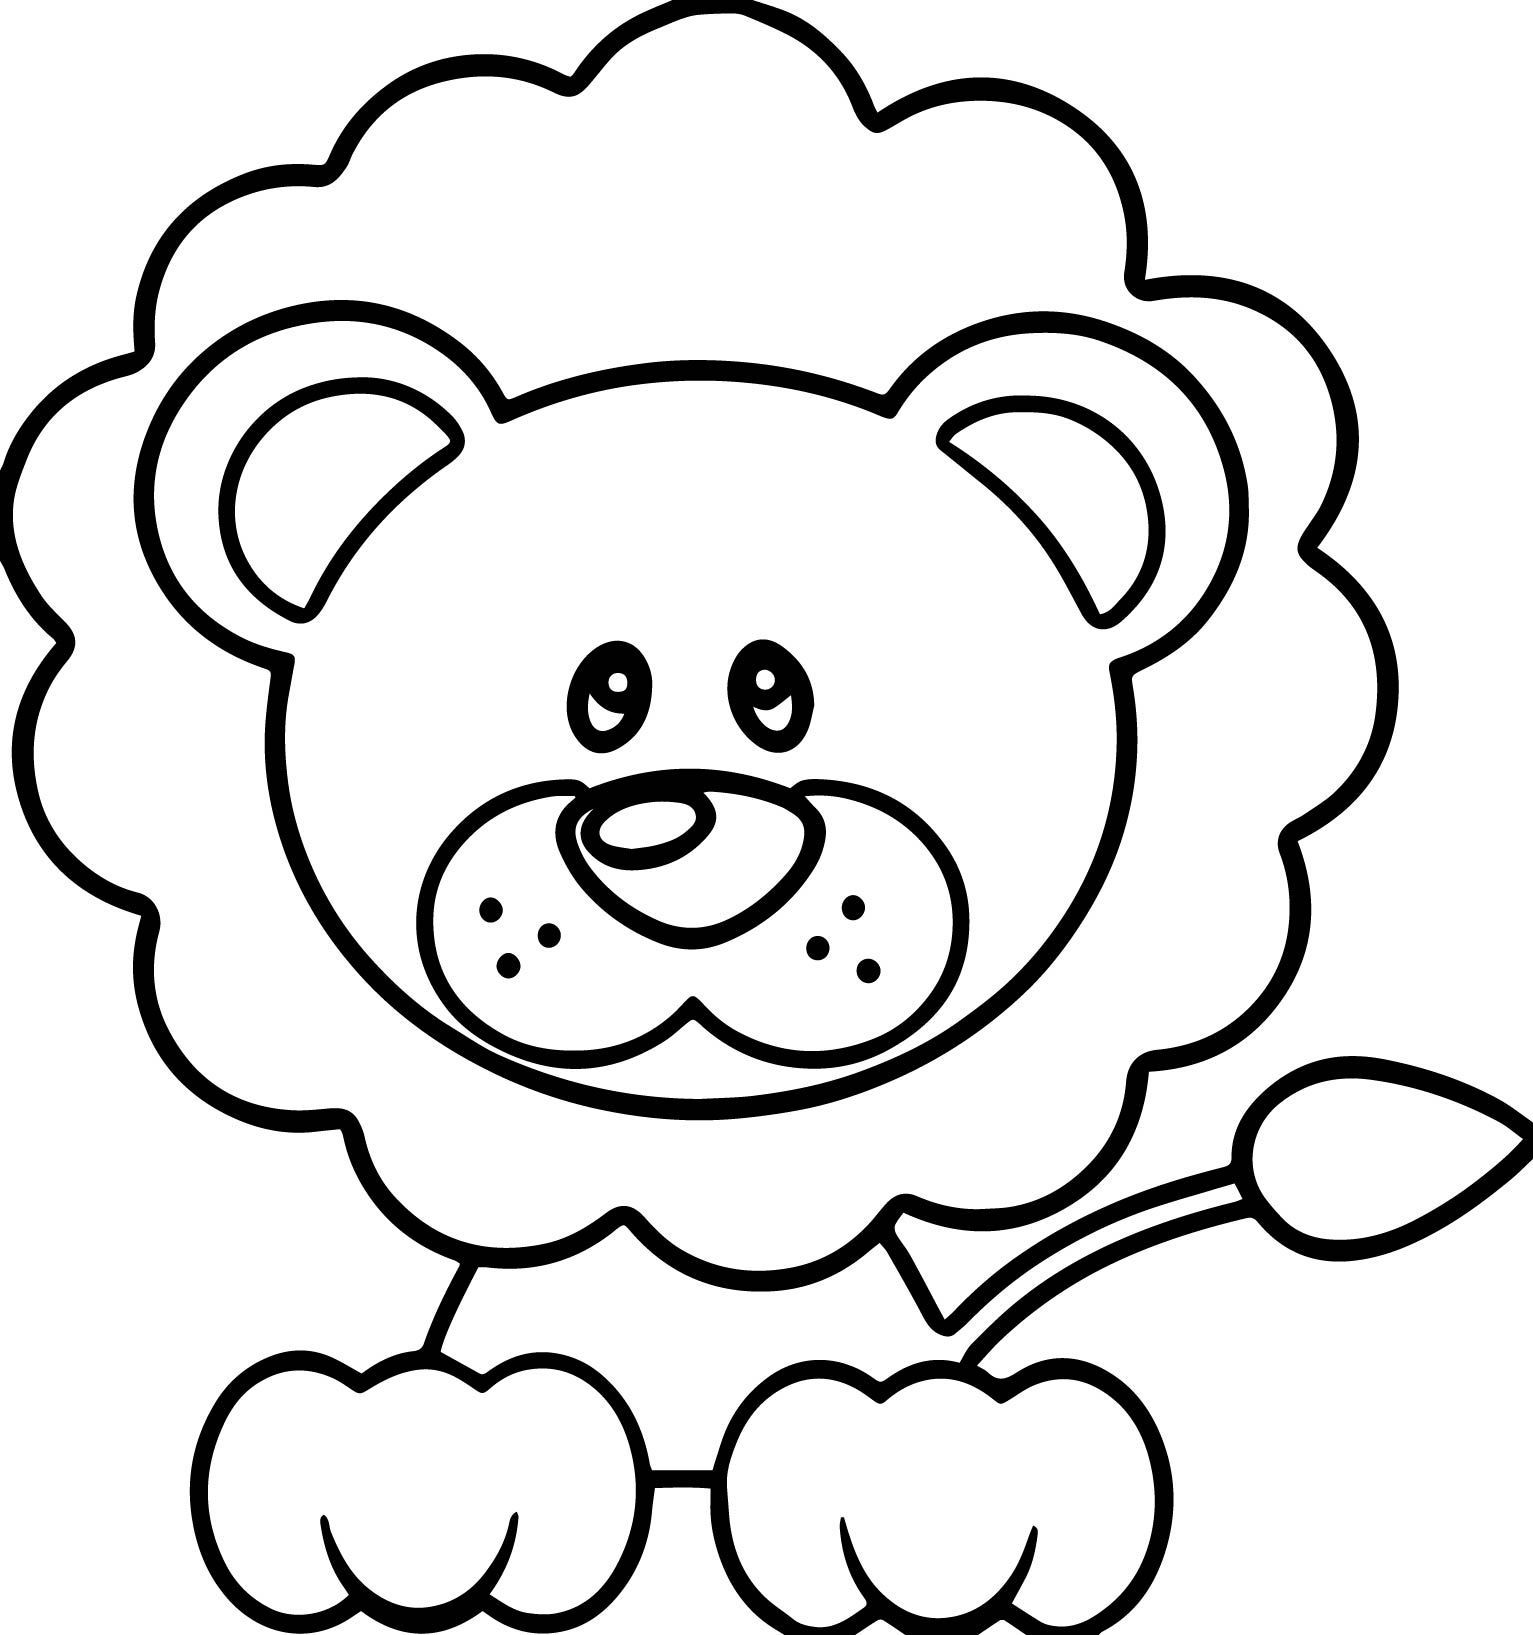 Cool Calm Lion Coloring Page